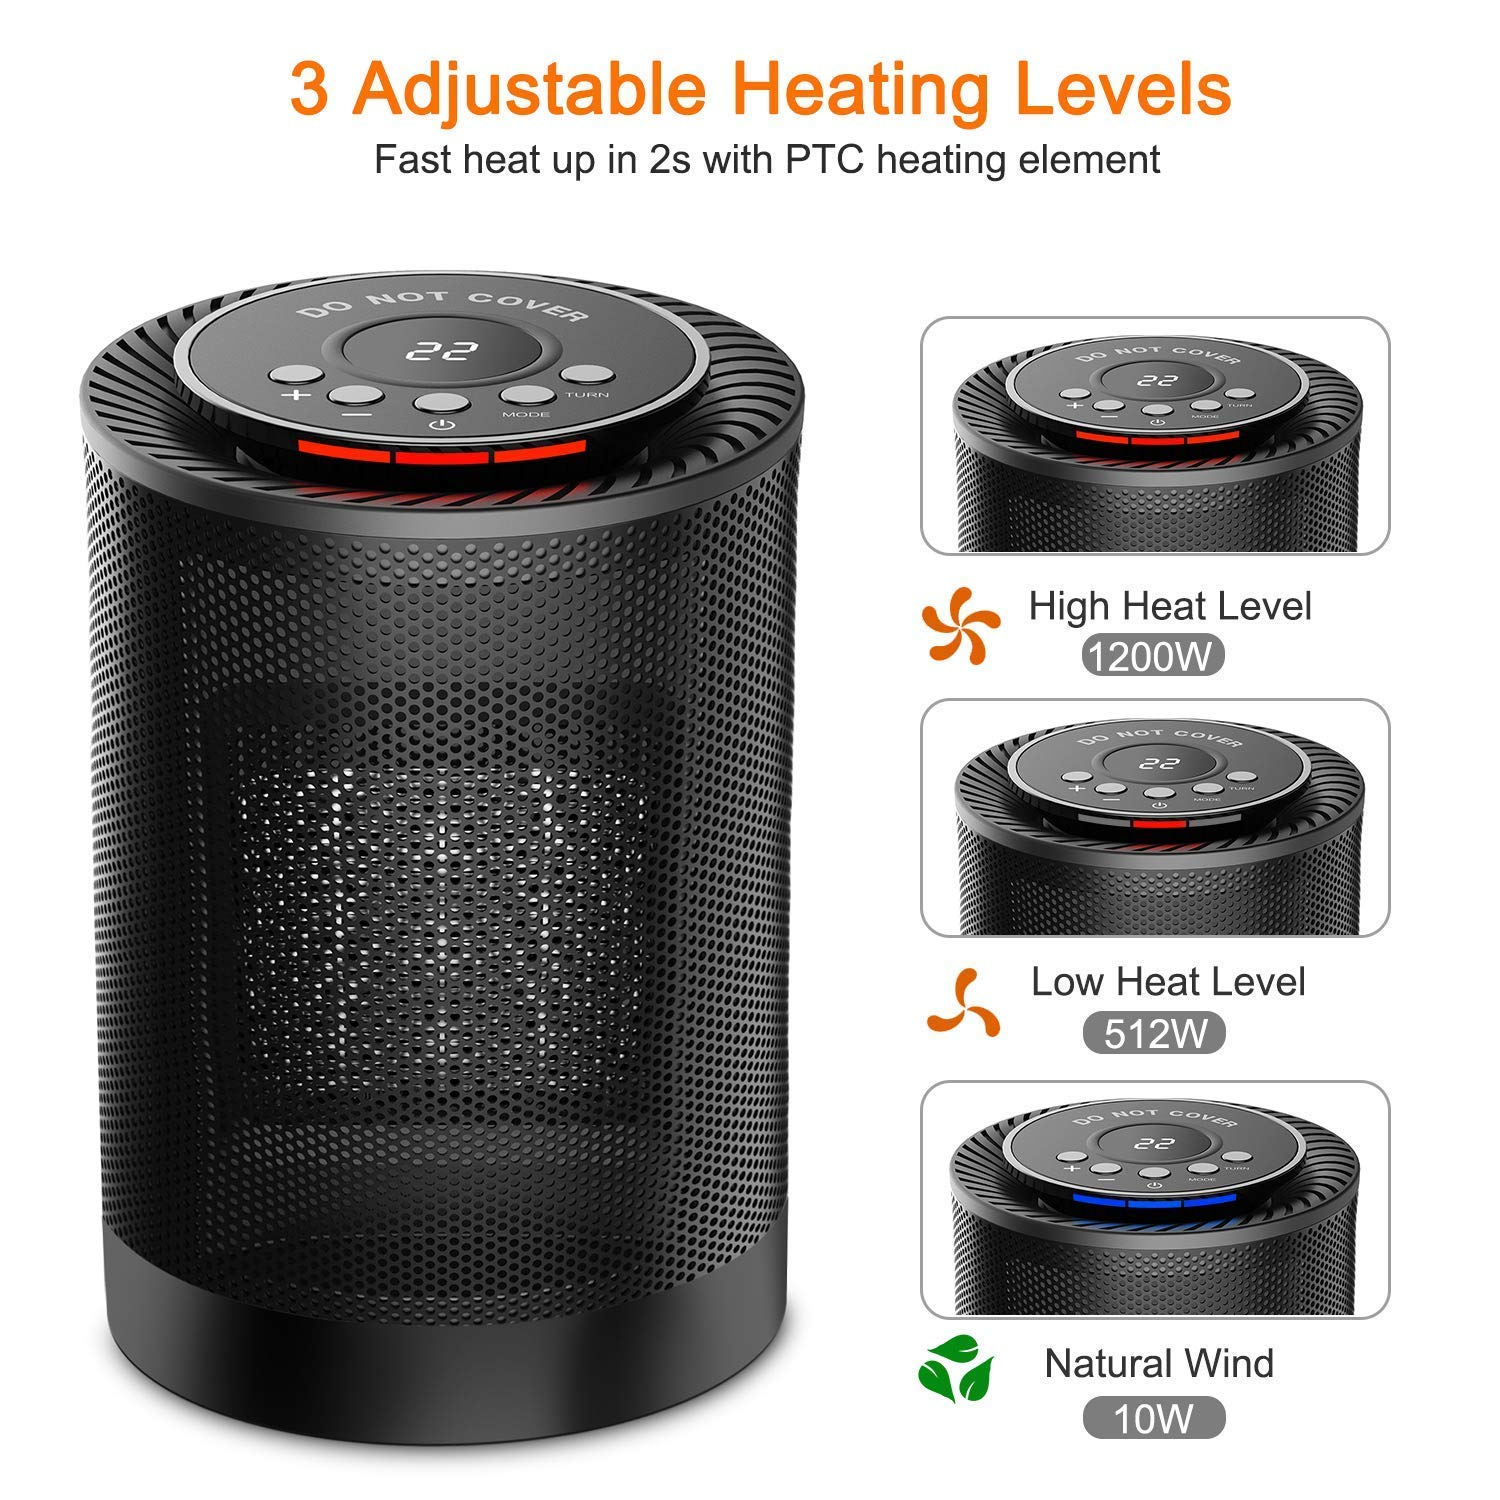 for Home Office Use Portable Electric Heater Fan with Adjustable Thermostat Auto Oscillate Tip-Over and Overheat Protection NEXGADGET 1200W/600W Ceramic Space Heater Carrying Handle